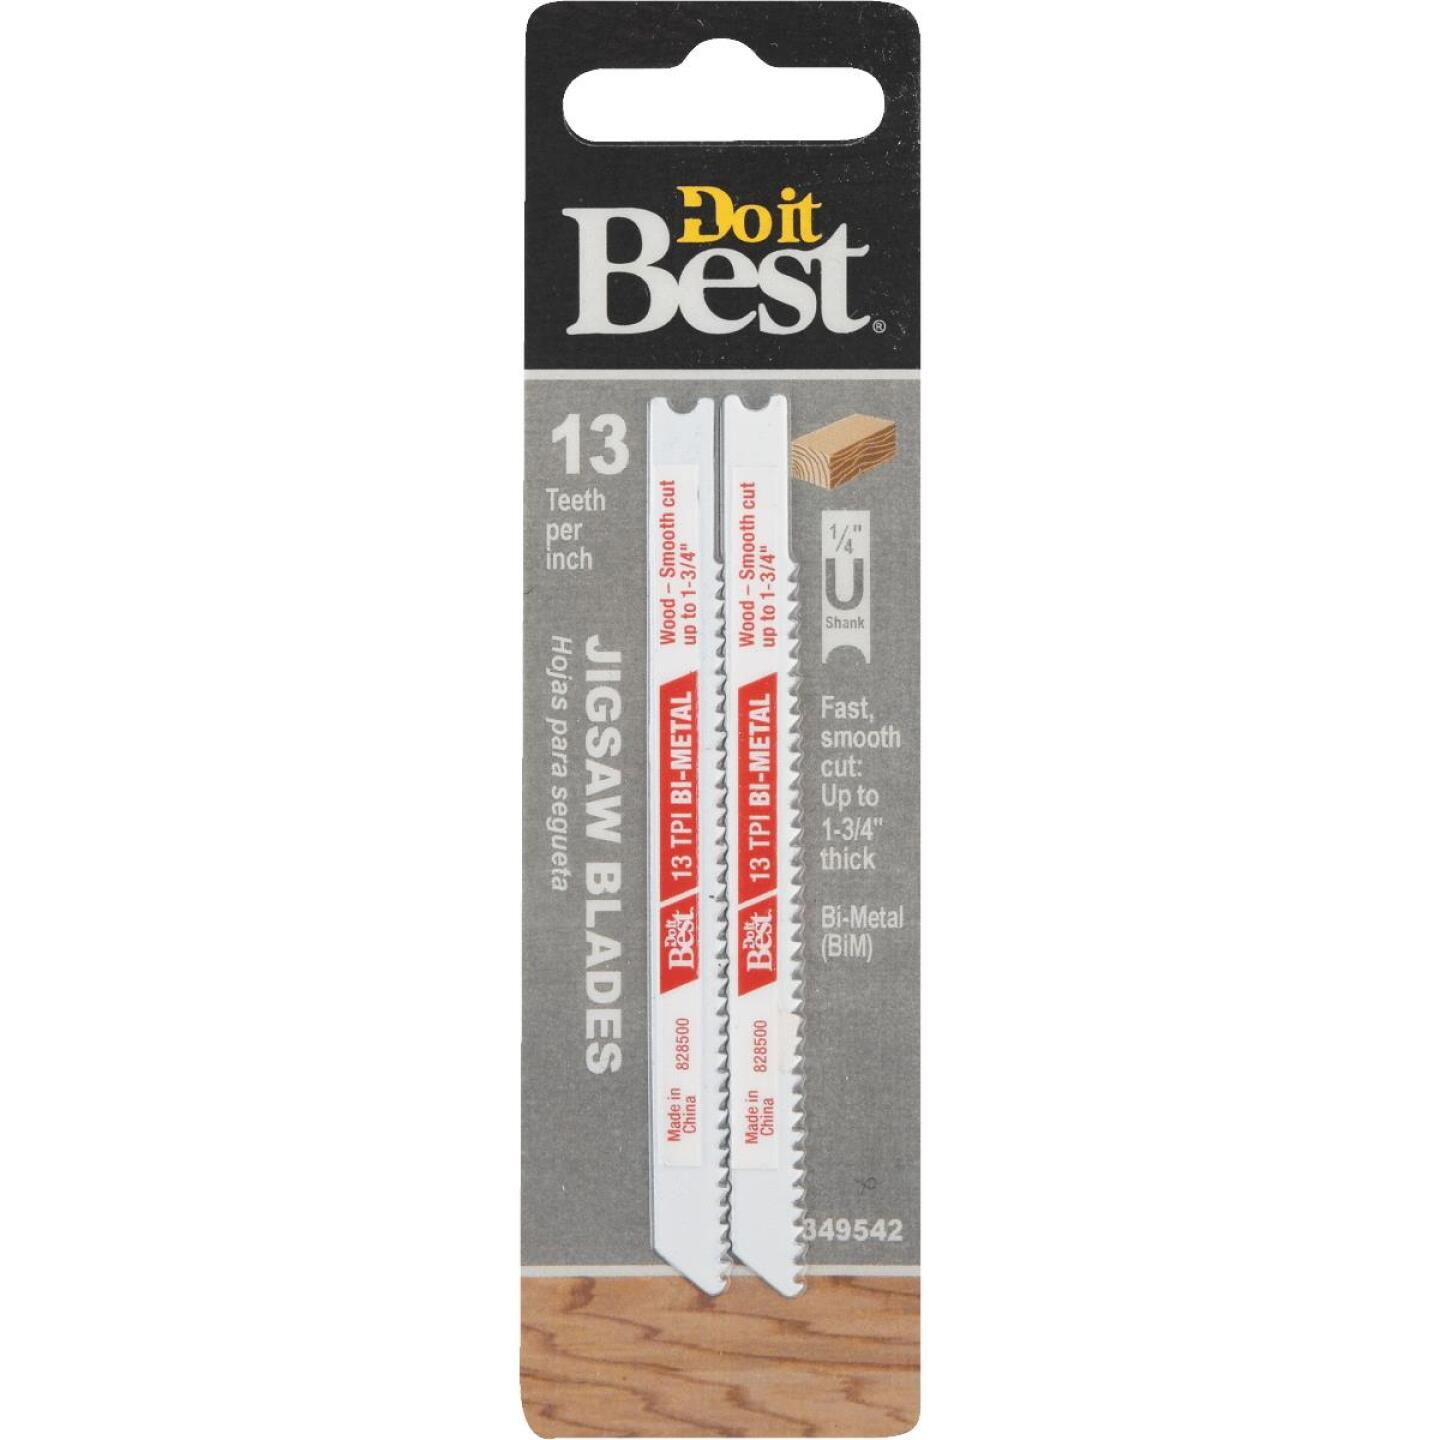 Do it Best U-Shank 3-5/8 In. x 13 TPI Bi-Metal Jig Saw Blade, Wood 1-3/4 In. Thick (2-Pack) Image 1